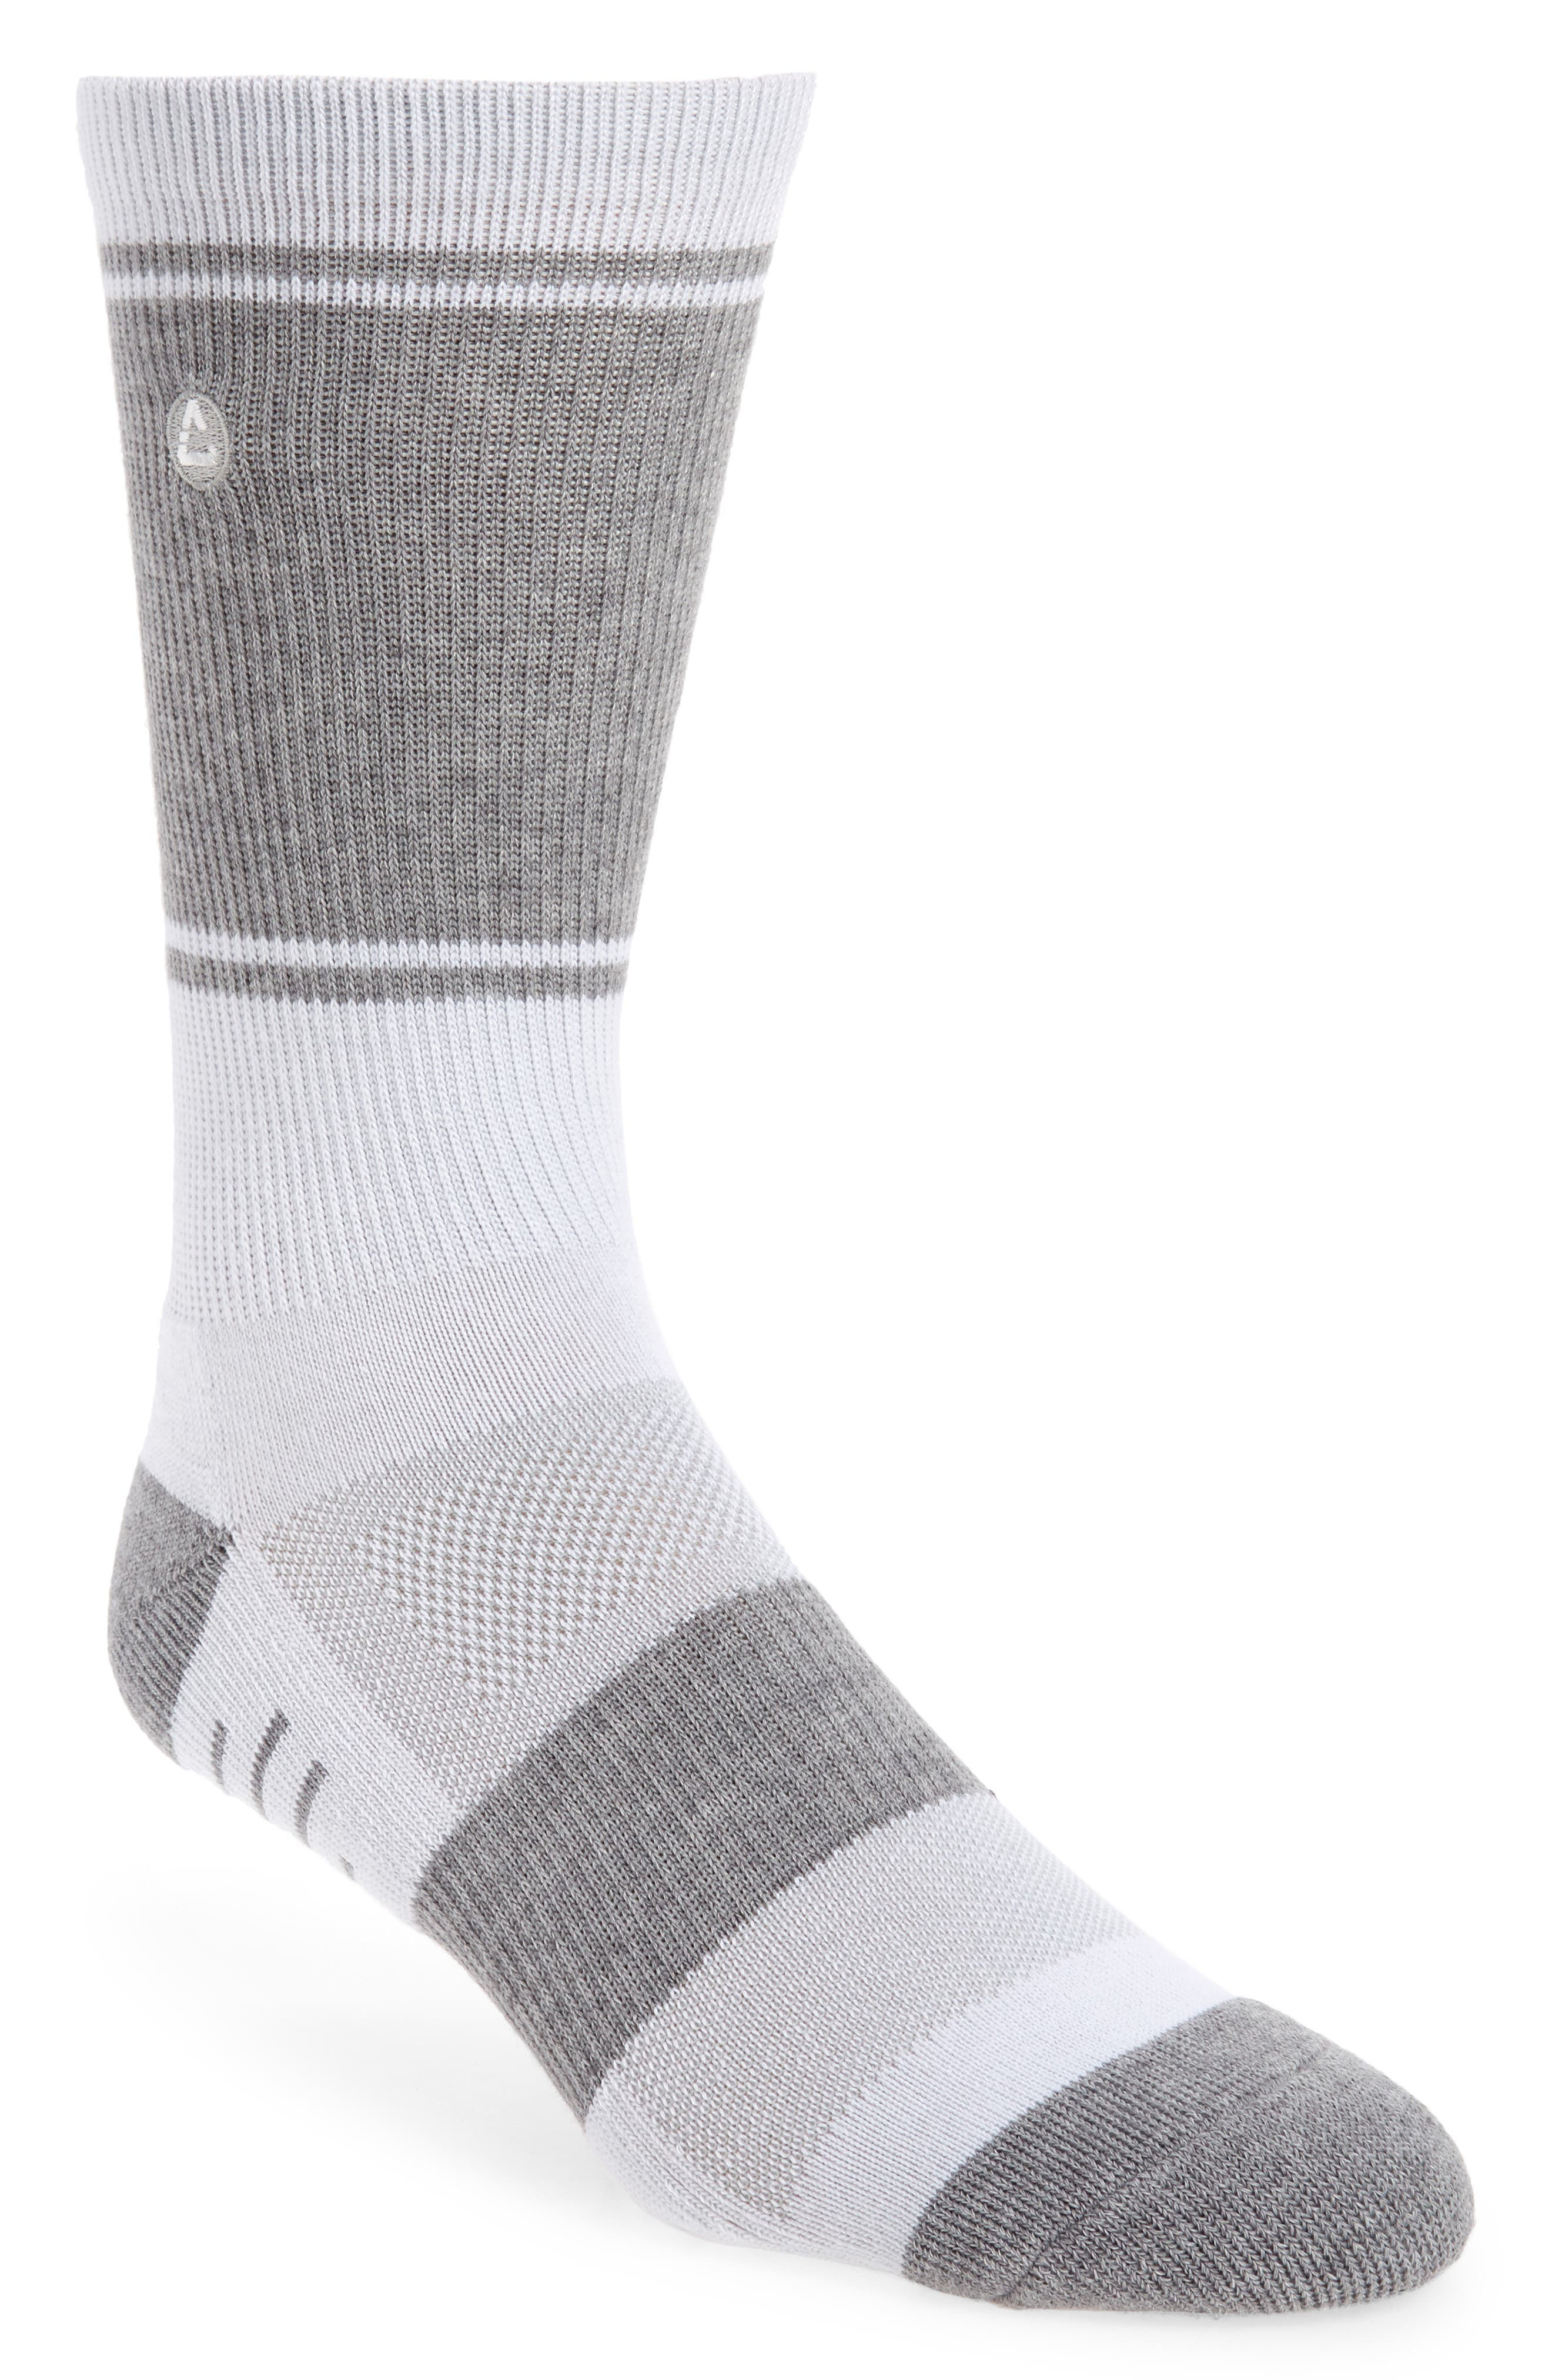 Elastic arch support, stress-zone cushioning and enhanced ventilation put performance comfort under every step in socks that also fight odors to keep you fresh. Style Name: Travismathew Baja Stripe Crew Socks. Style Number: 6117119. Available in stores.